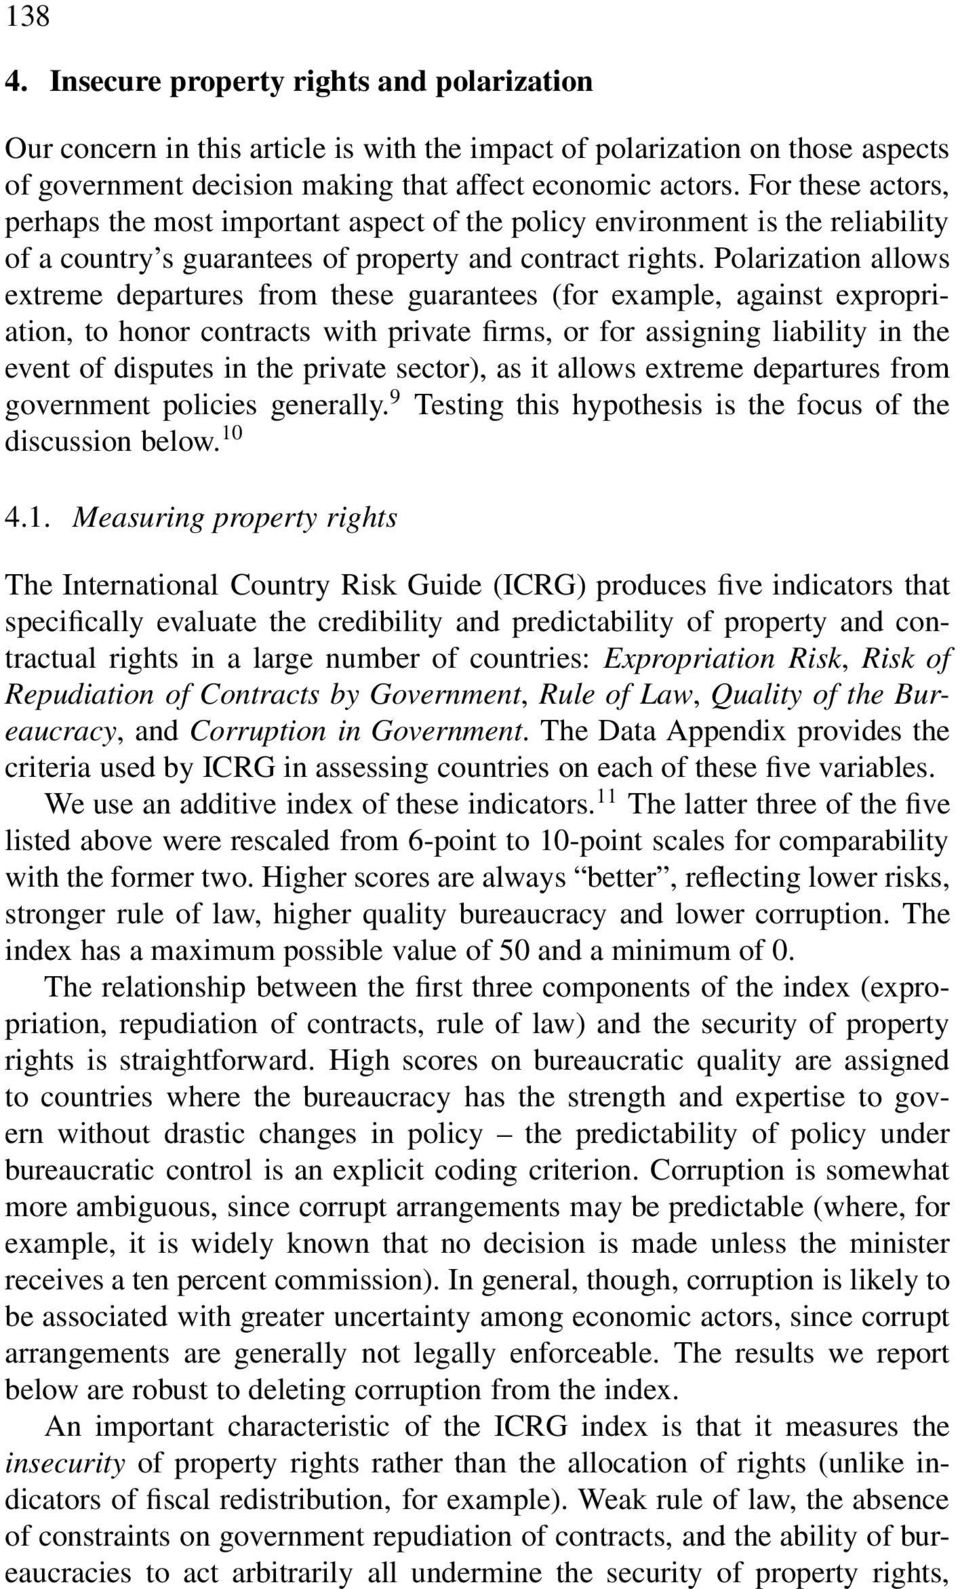 Polarization allows extreme departures from these guarantees (for example, against expropriation, to honor contracts with private firms, or for assigning liability in the event of disputes in the